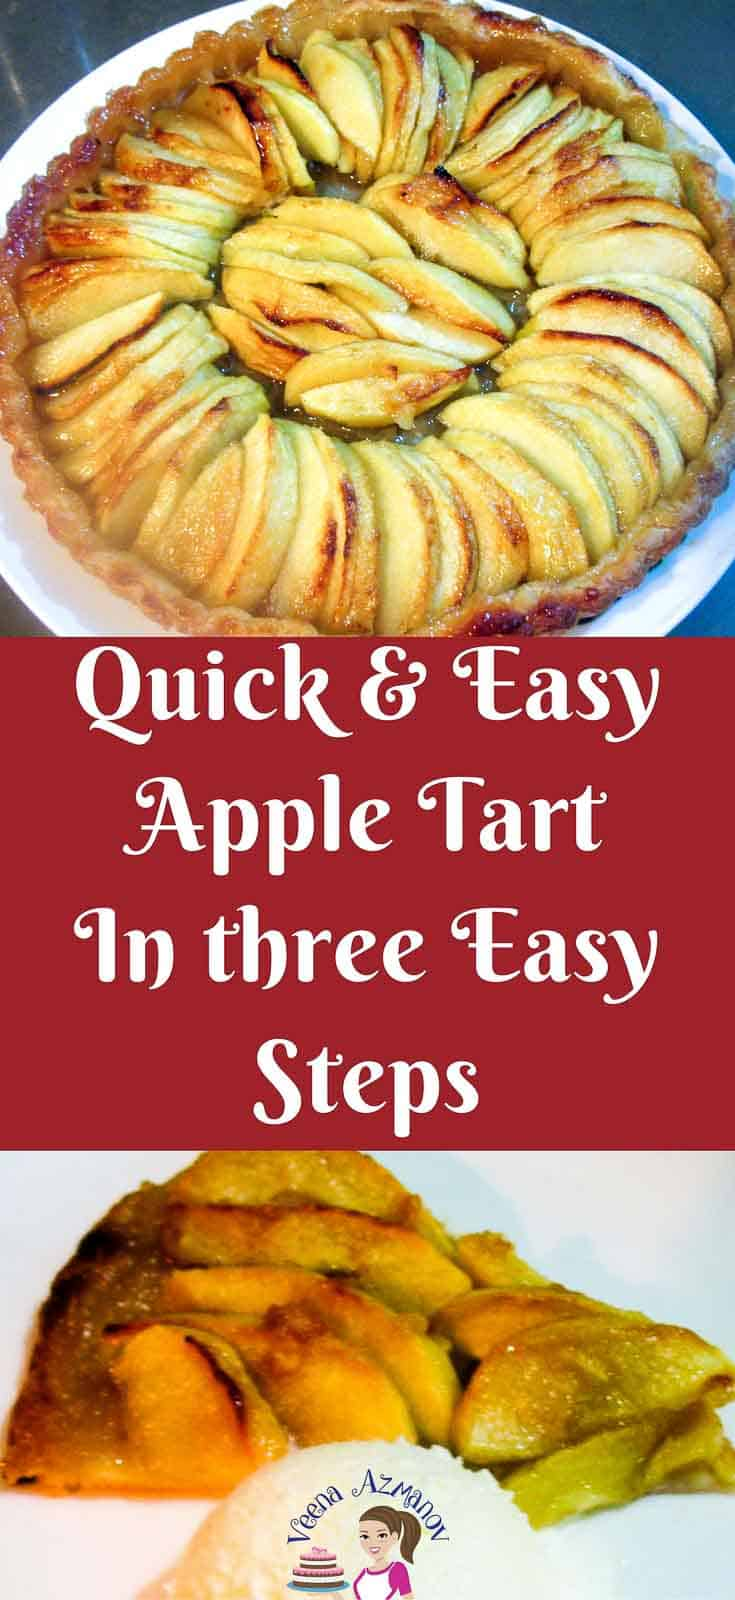 This simple, easy and effortless quick and easy apple tart can be made in just three easy steps